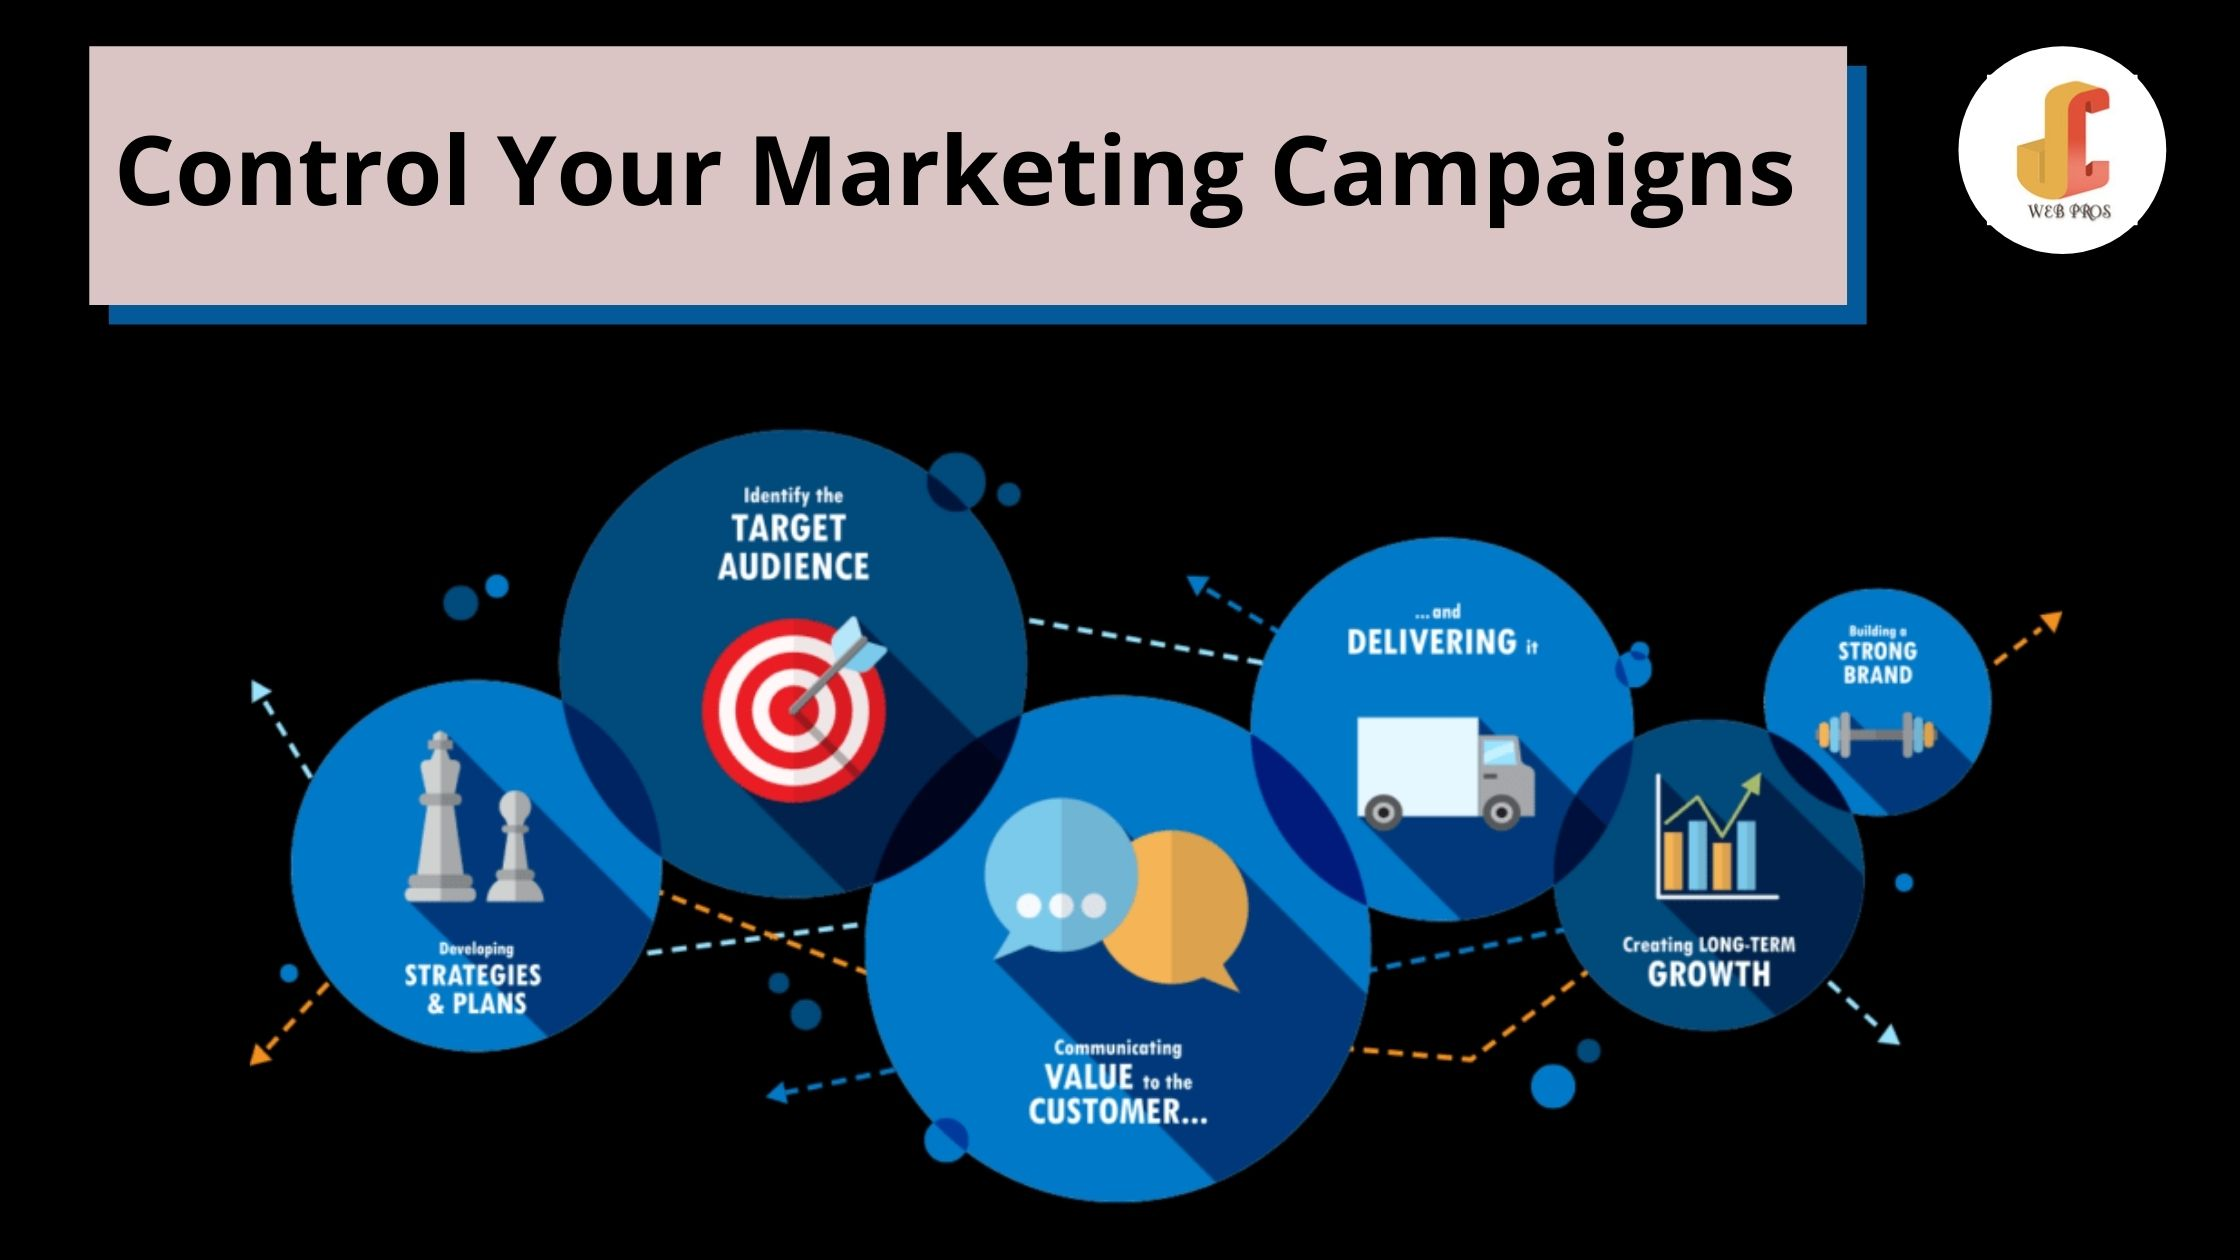 Control Your Marketing Campaigns Fully